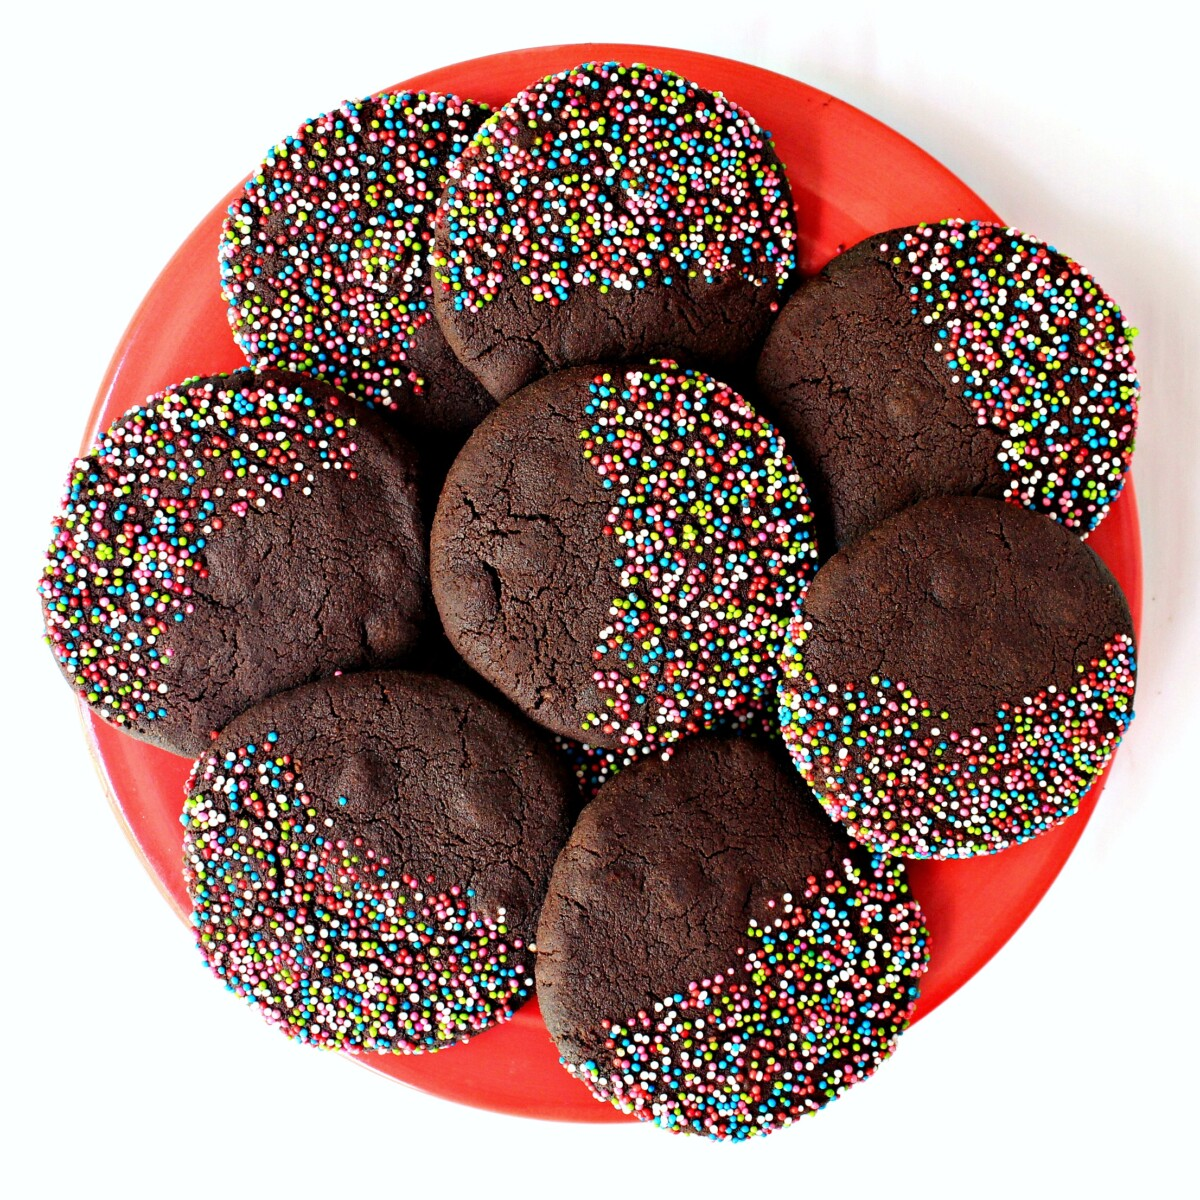 Chocolate cookies with nonpareil sprinkles on a red serving plate.